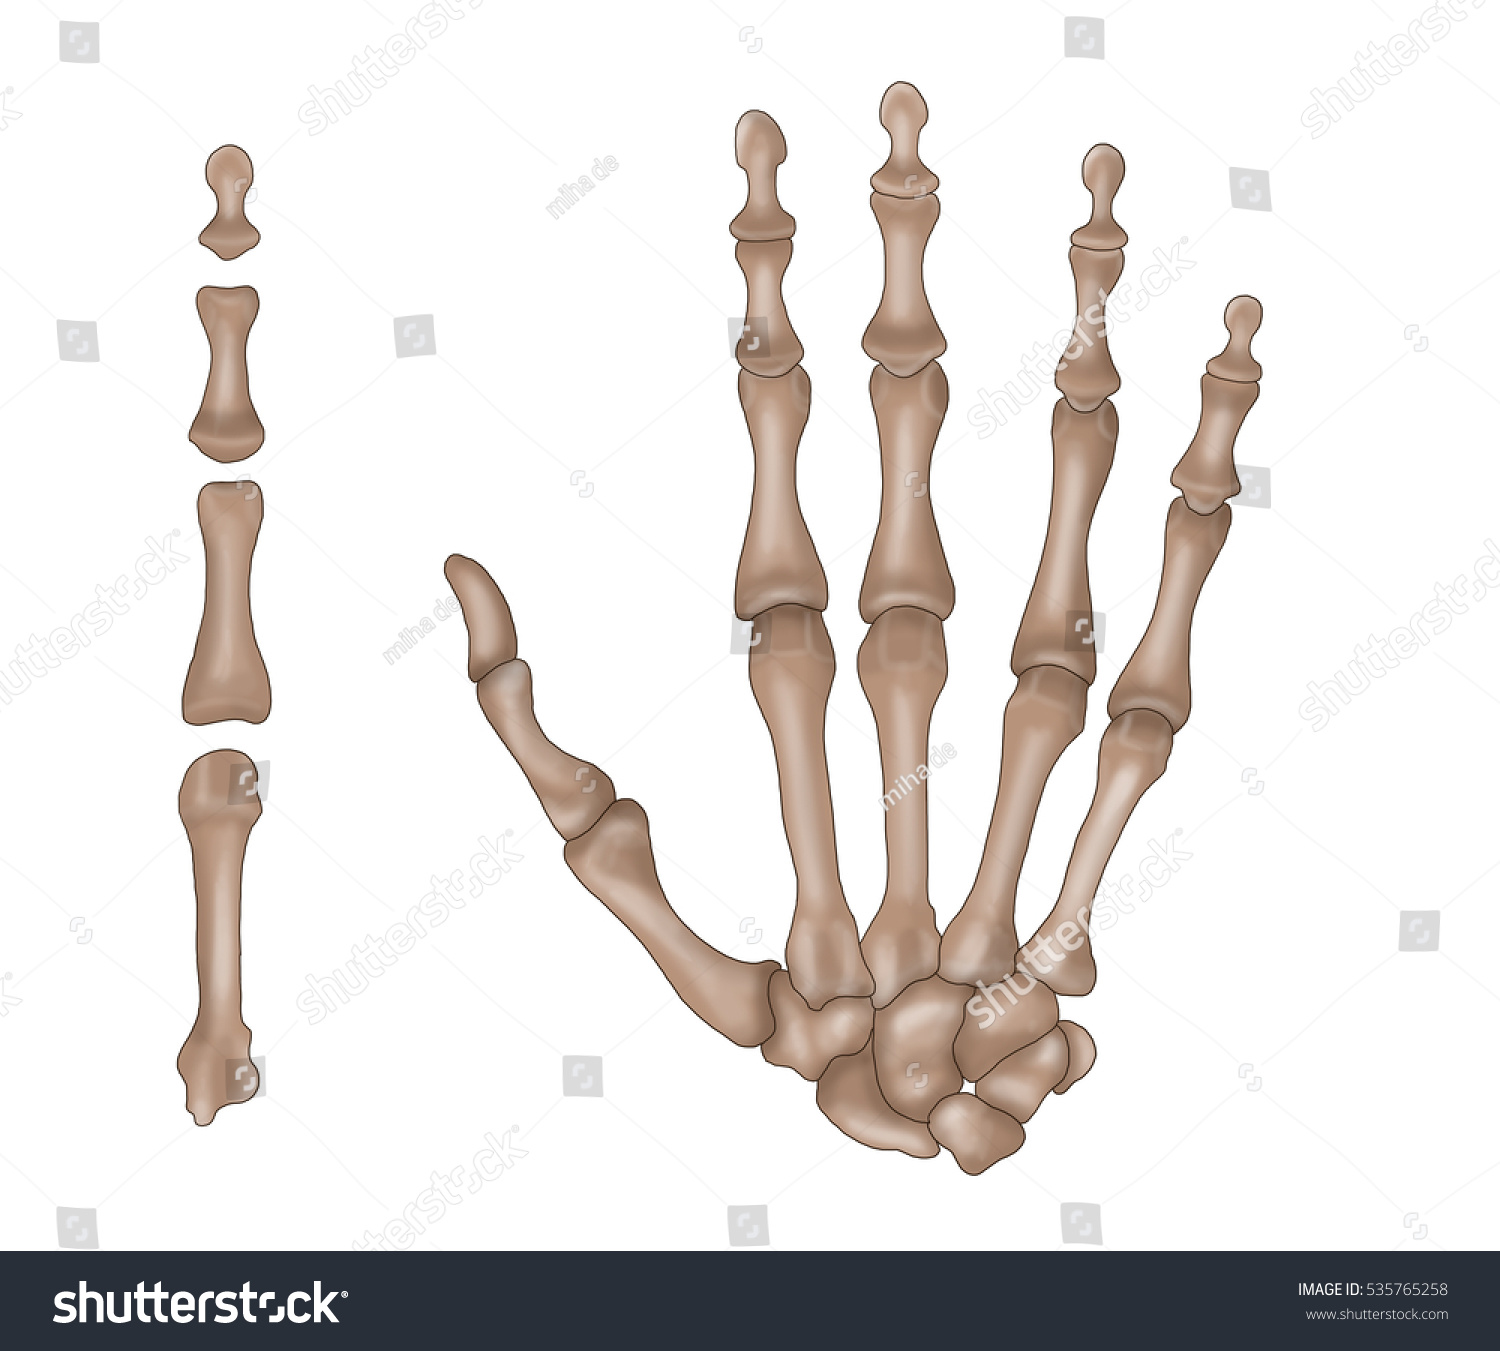 Hand Anatomy Hand Bones Stock Illustration 535765258 Shutterstock